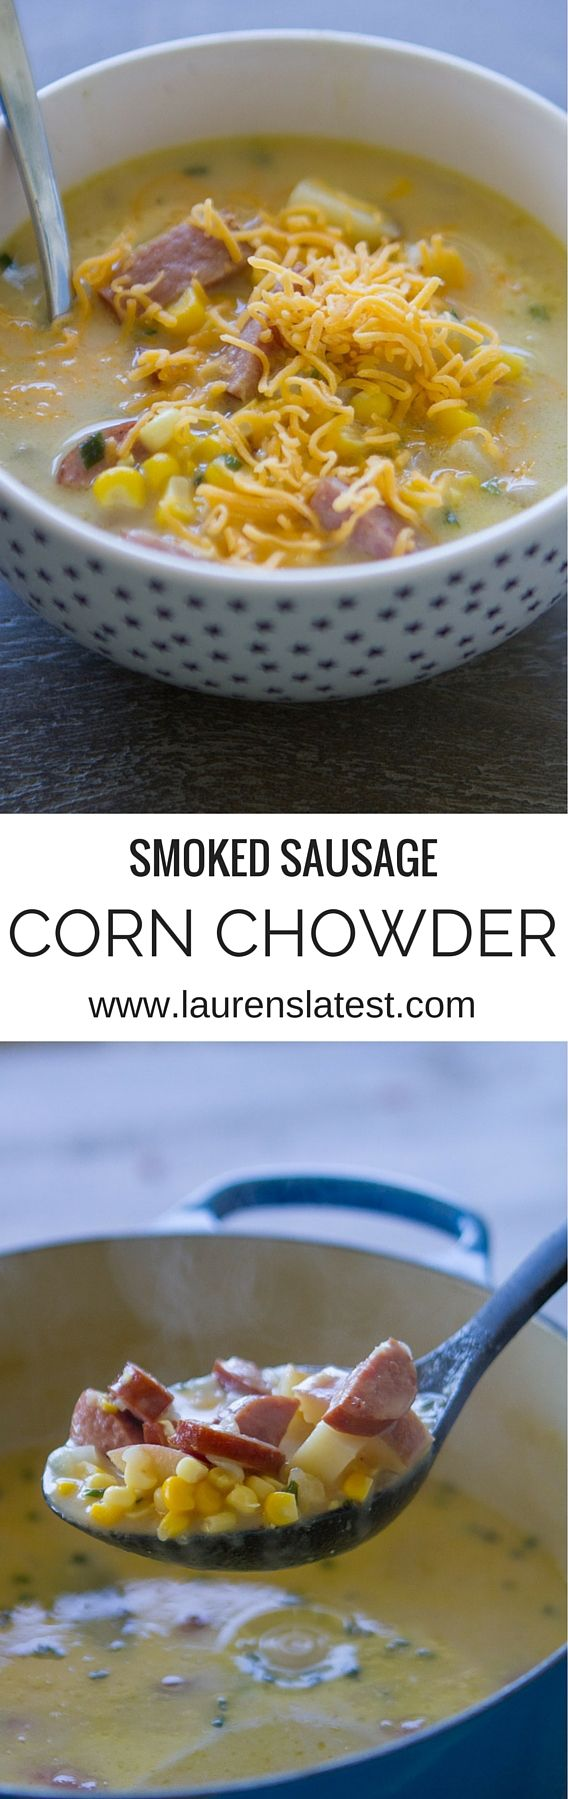 ... Soups, Stews, and Chowder on Pinterest | Noodle soups, Stew and Clam